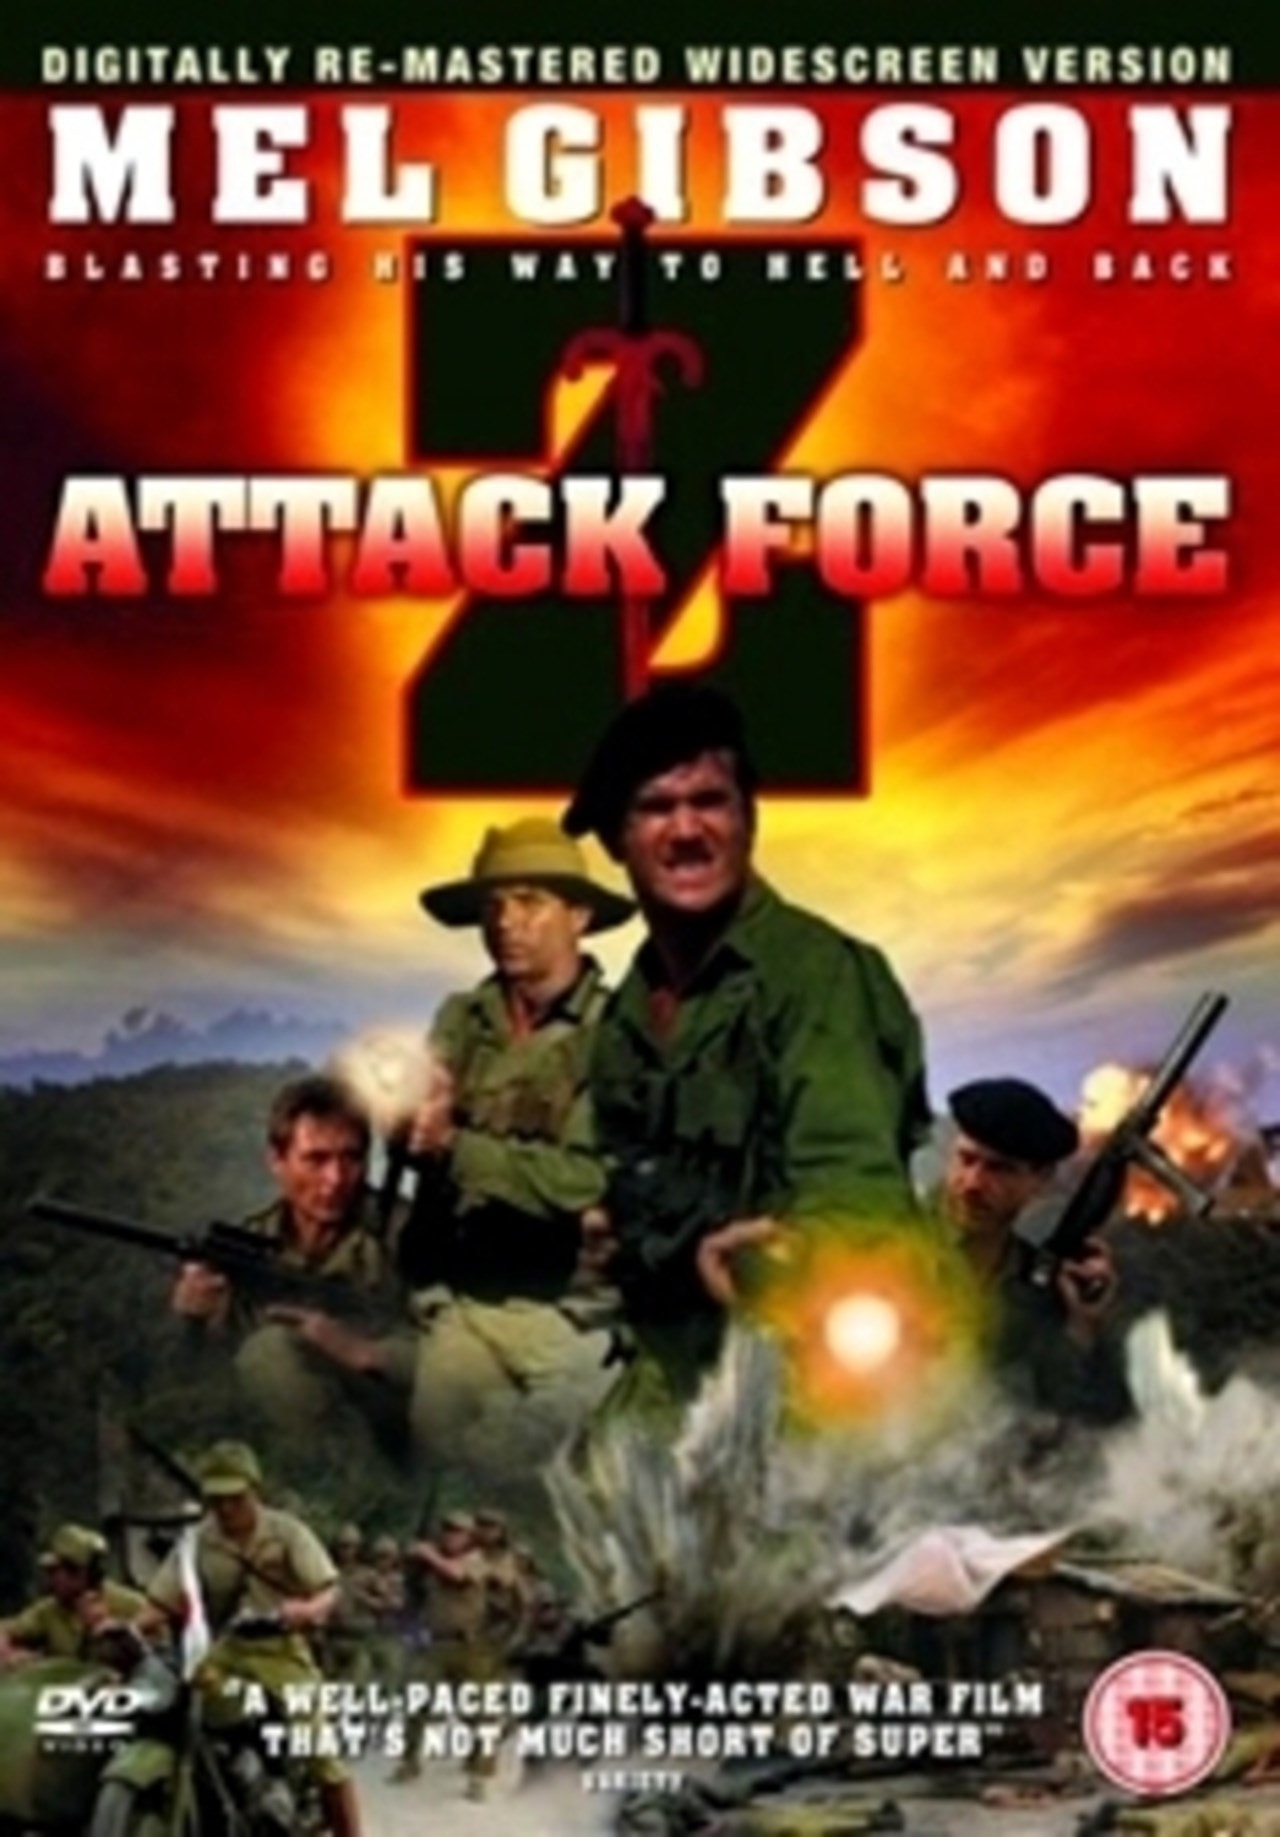 Attack Force Z - 1